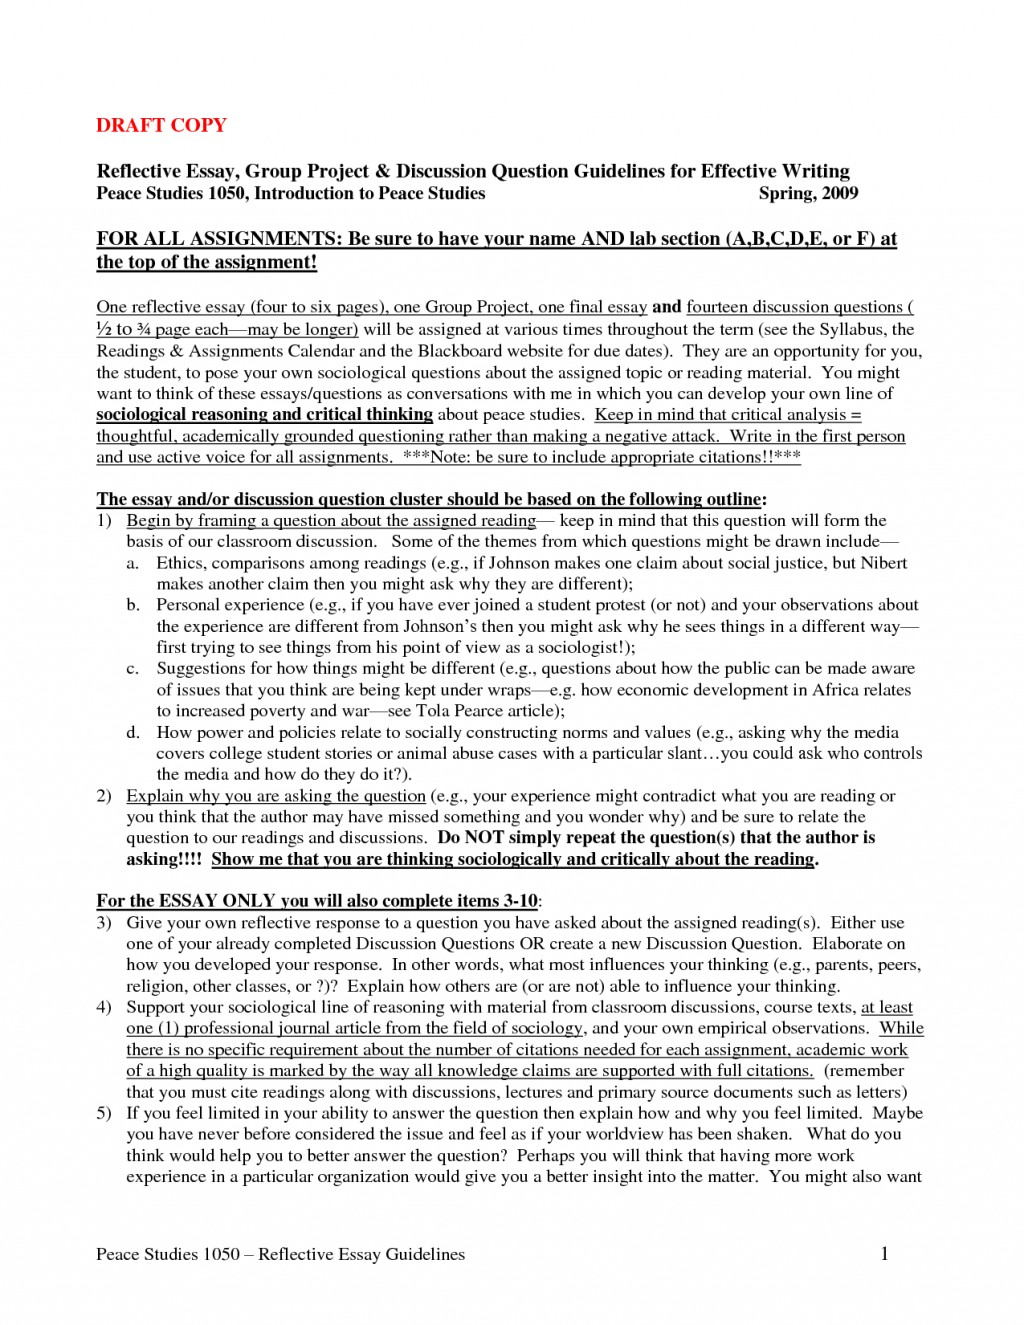 008 How To Start Reflective Essay Introduction Surprising A Do You An Write For Large